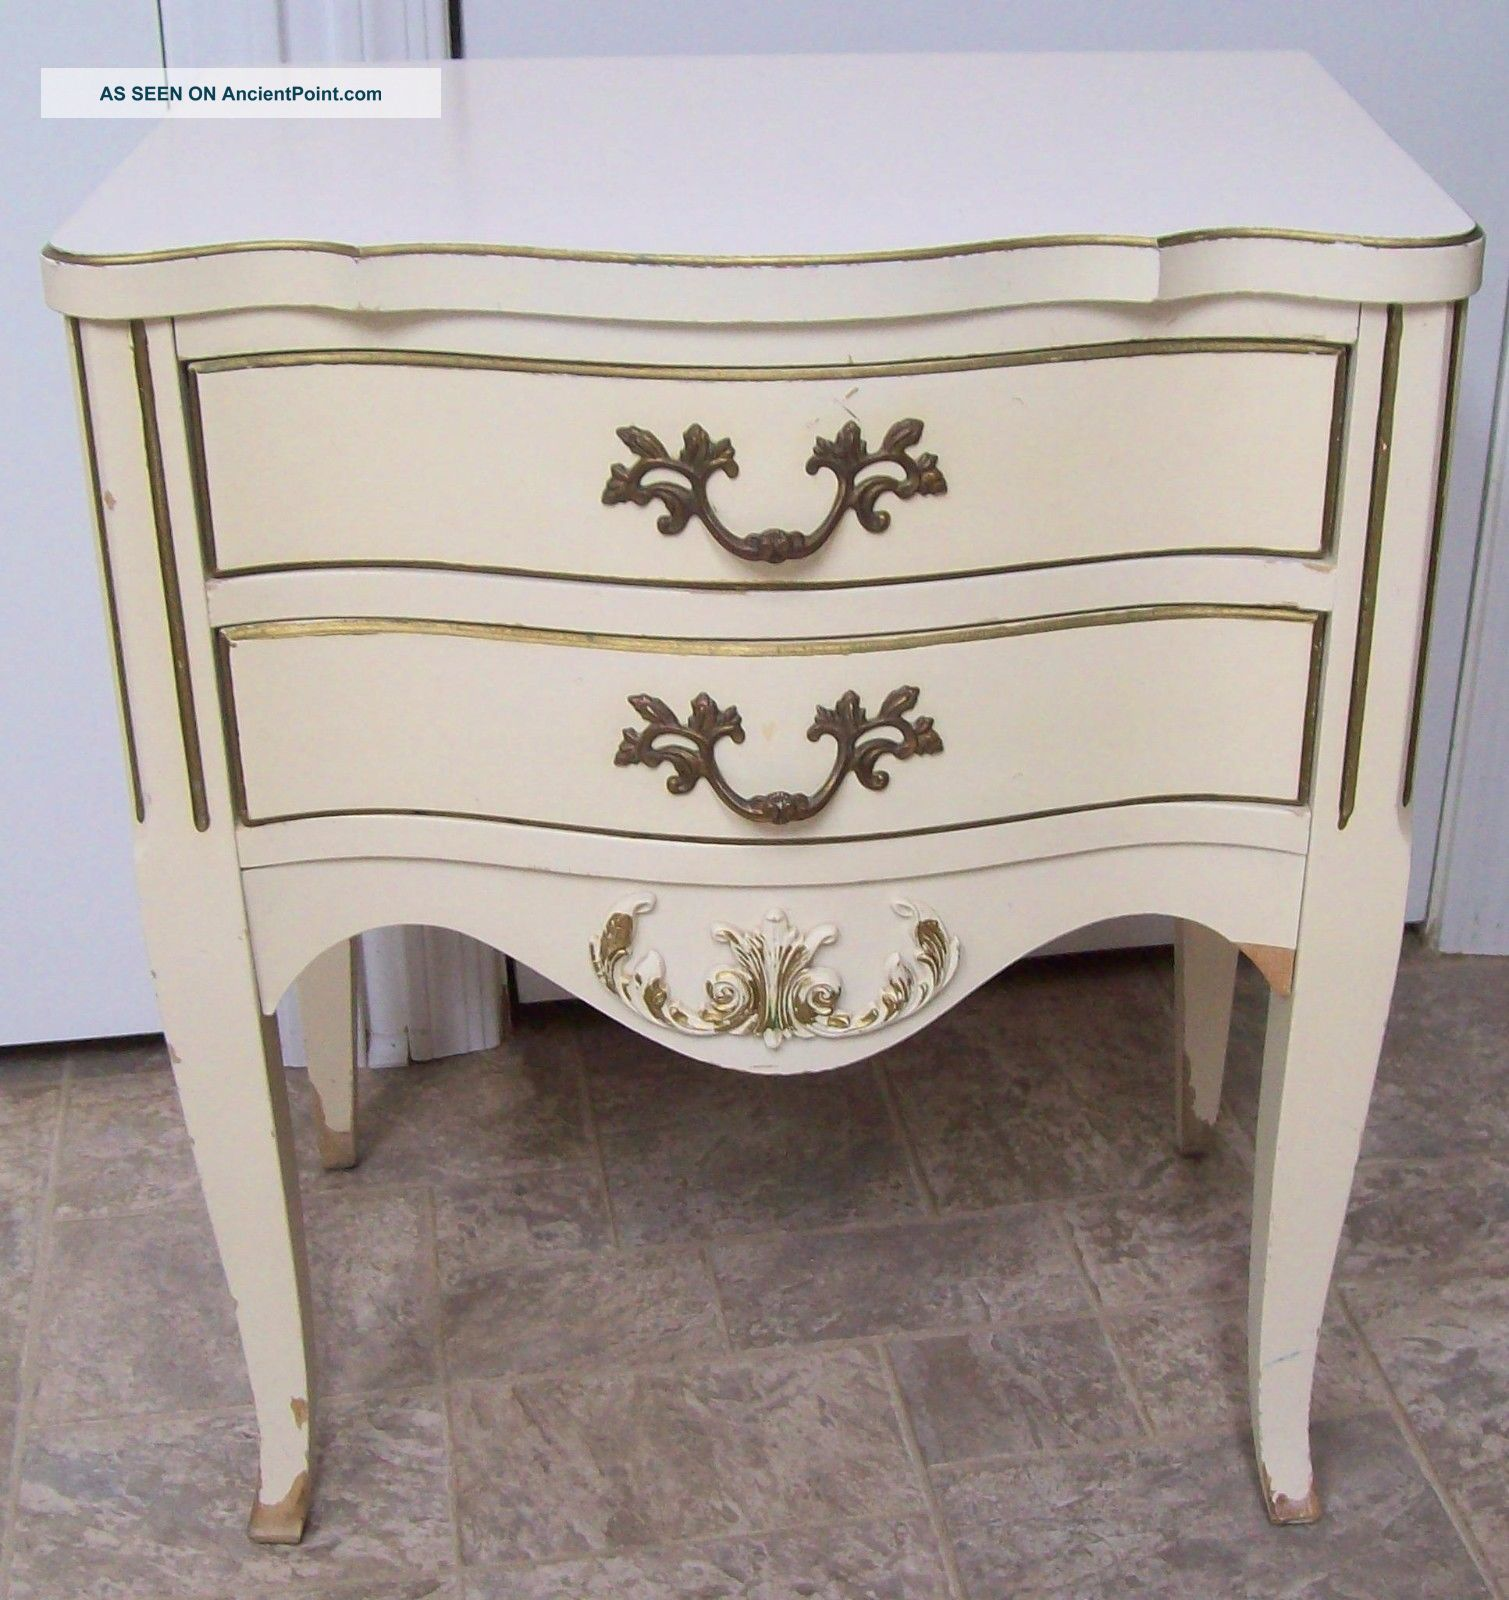 Vntg French Provincial Hollywood Regency Chic Cream Gold Night Stand 2 Drawer Post-1950 photo